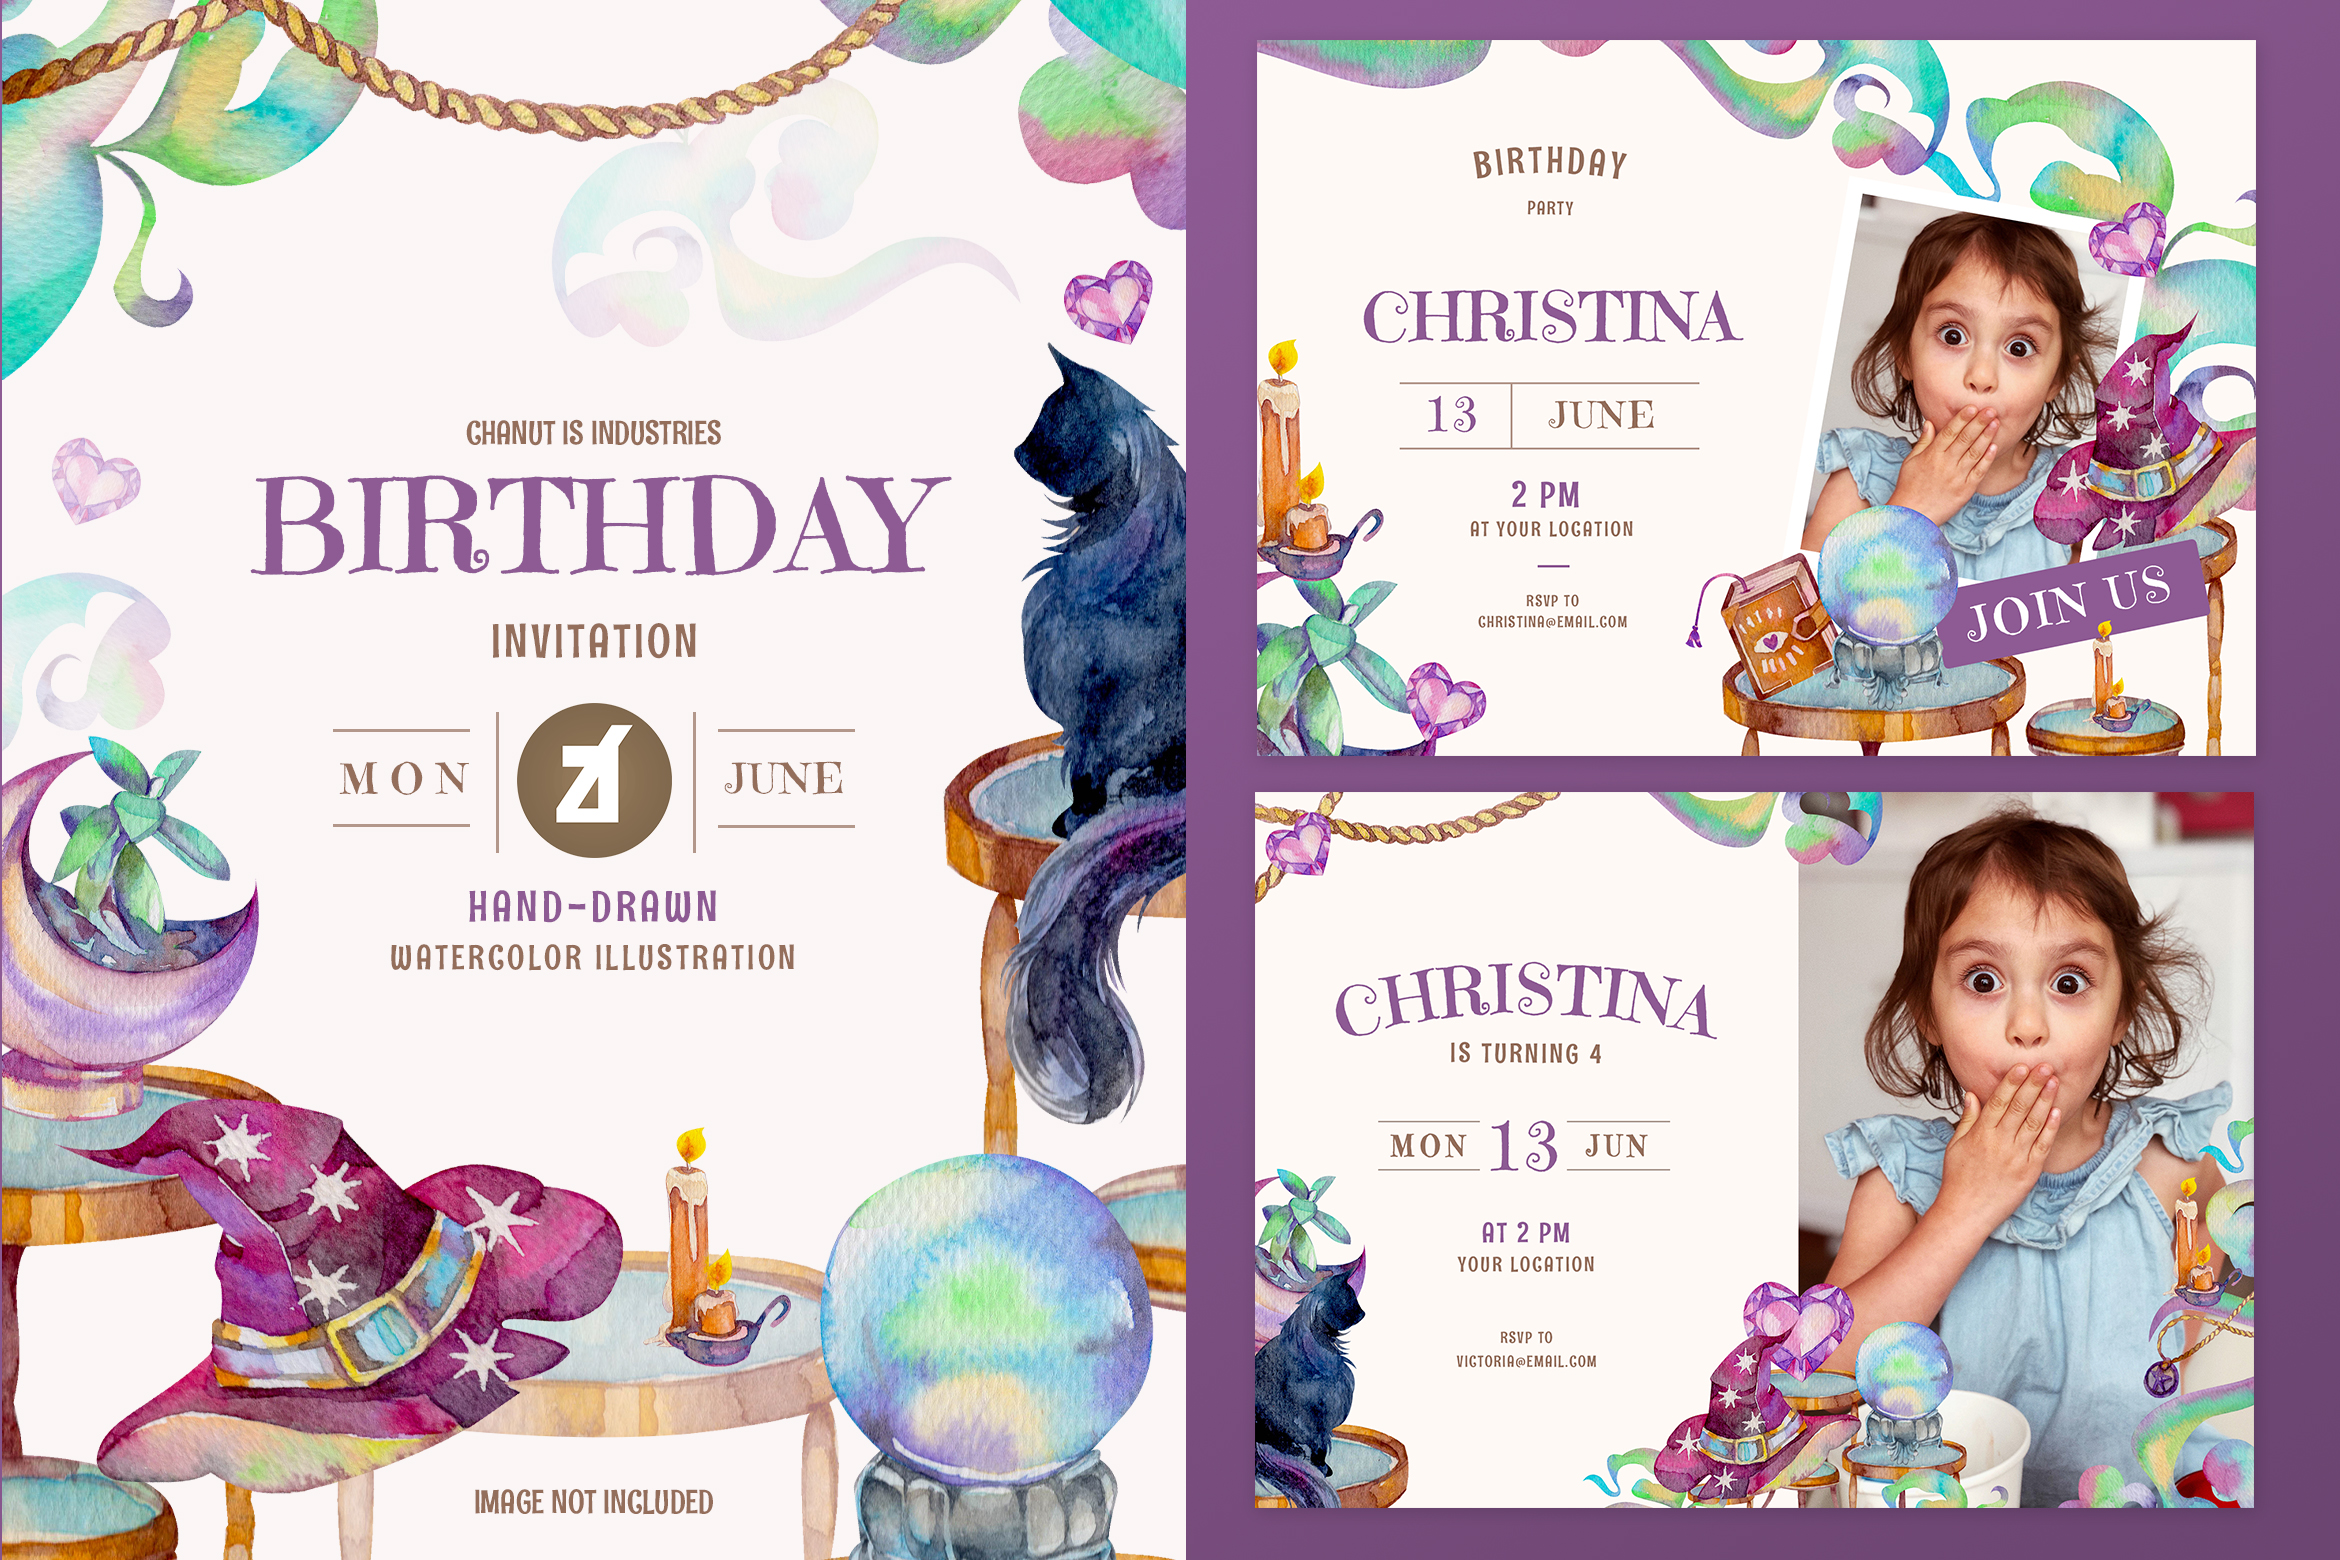 Download Free Svg Birthday Invitation Card Free Svg Cut Files Create Your Diy Projects Using Your Cricut Explore Silhouette And More The Free Cut Files Include Svg Dxf Eps And Png Files SVG Cut Files